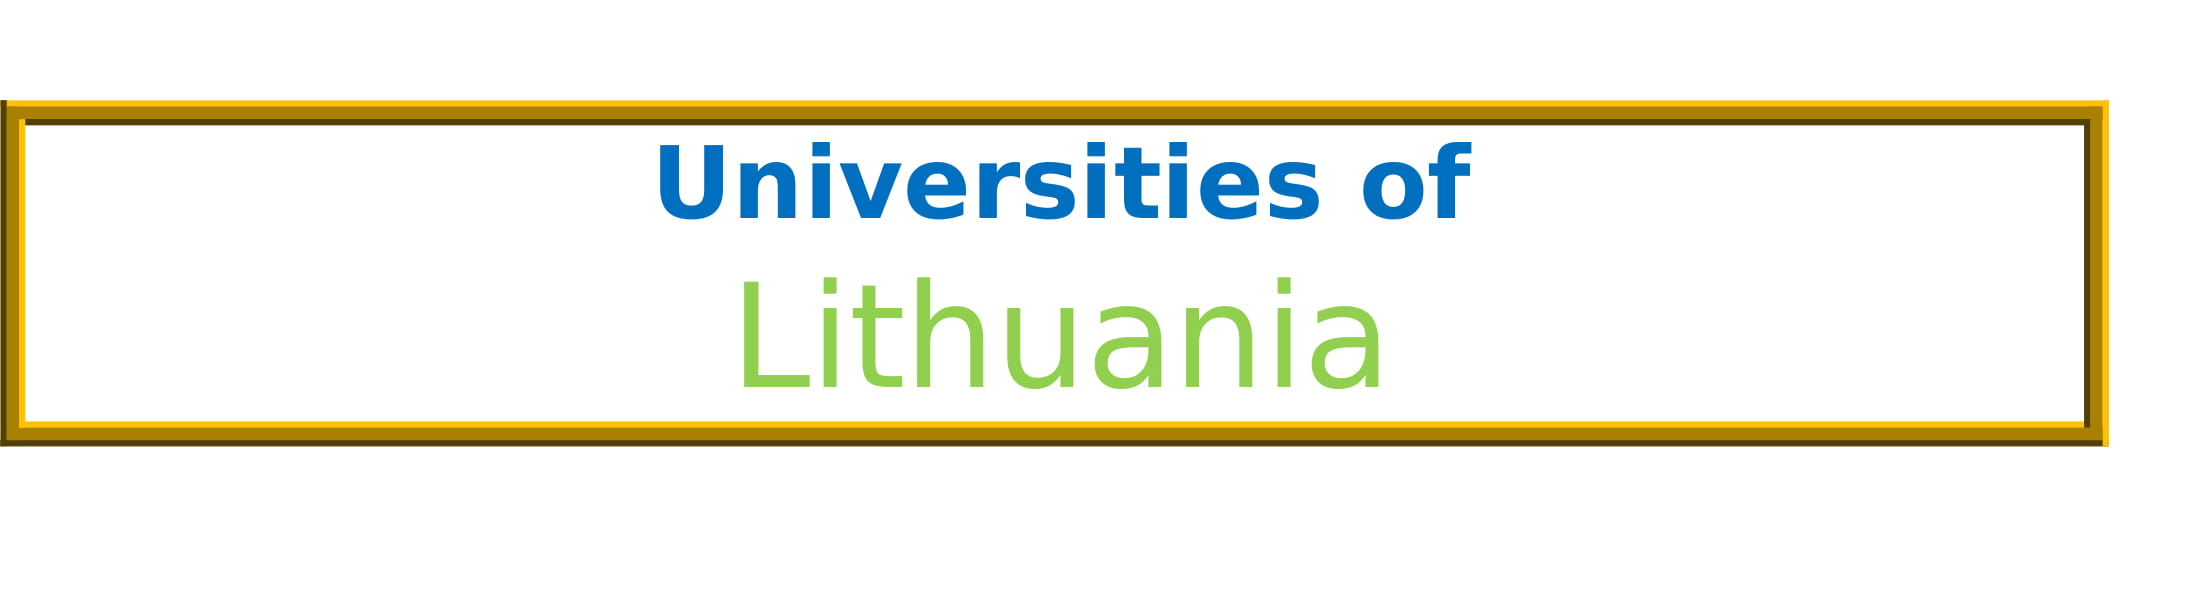 List of Universities in Lithuania